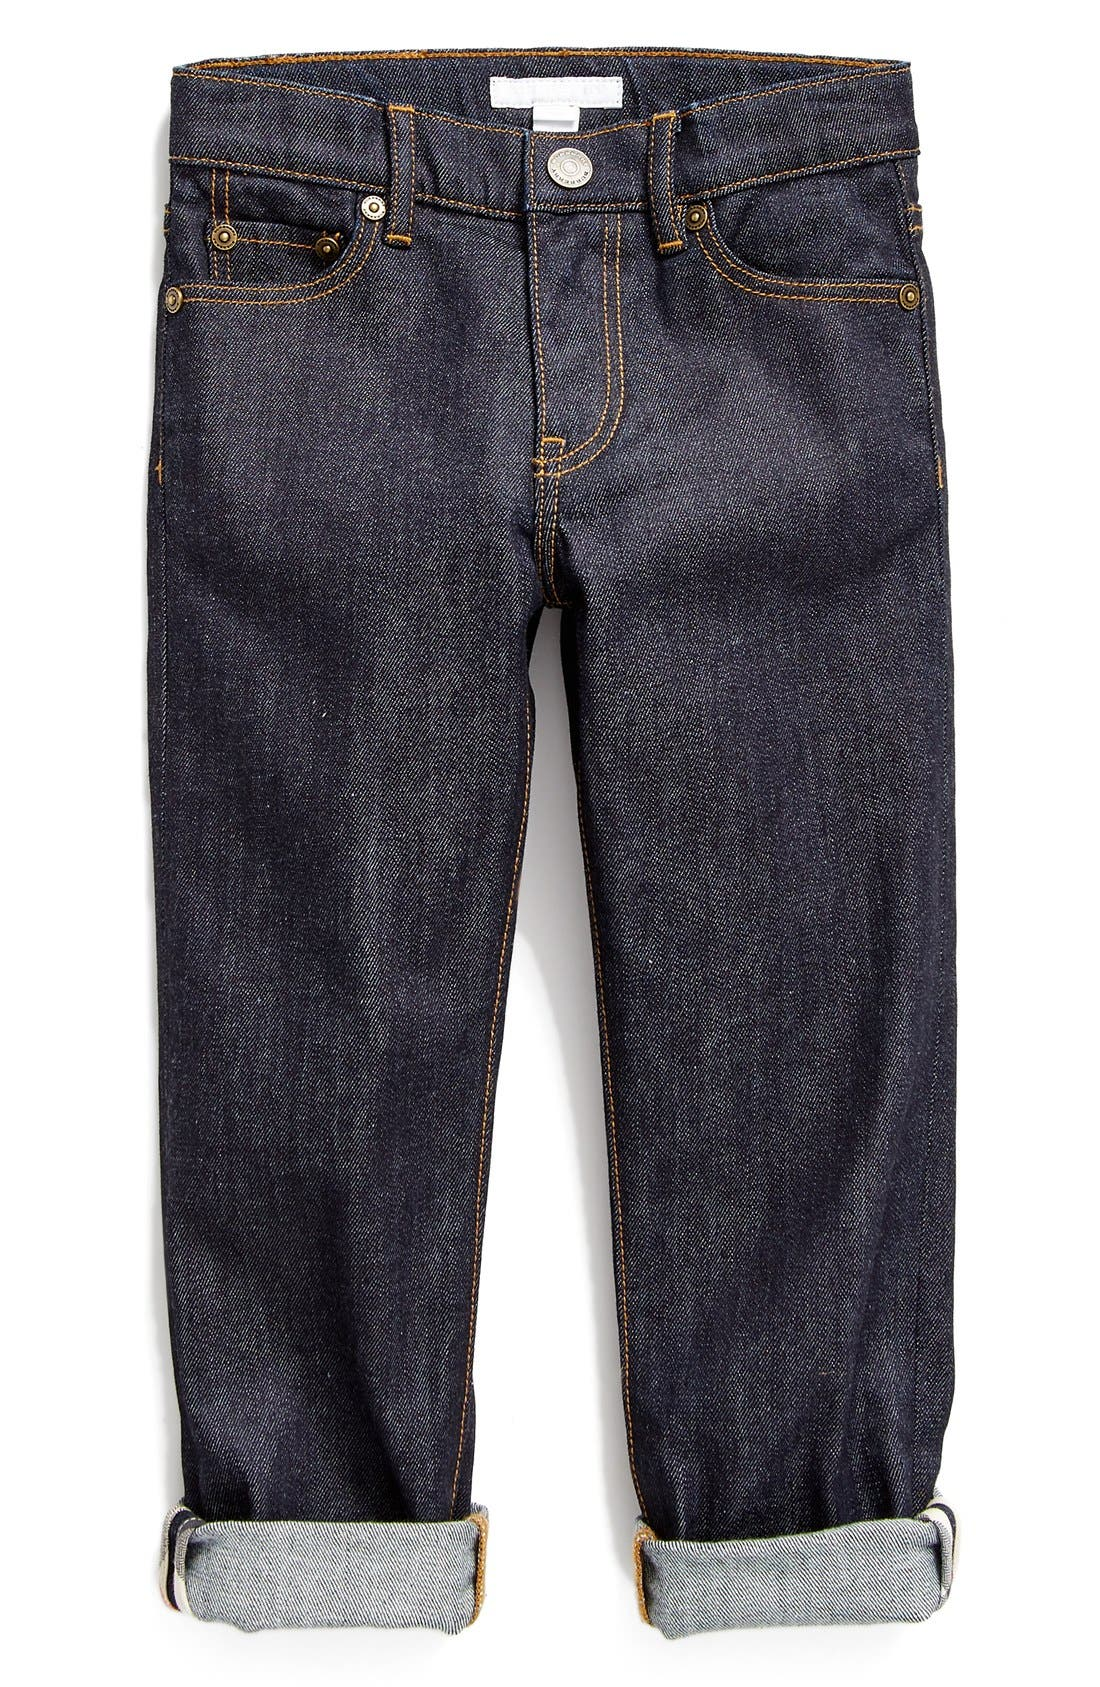 Alternate Image 1 Selected - Burberry Skinny Fit Jeans (Little Boys & Big Boys)